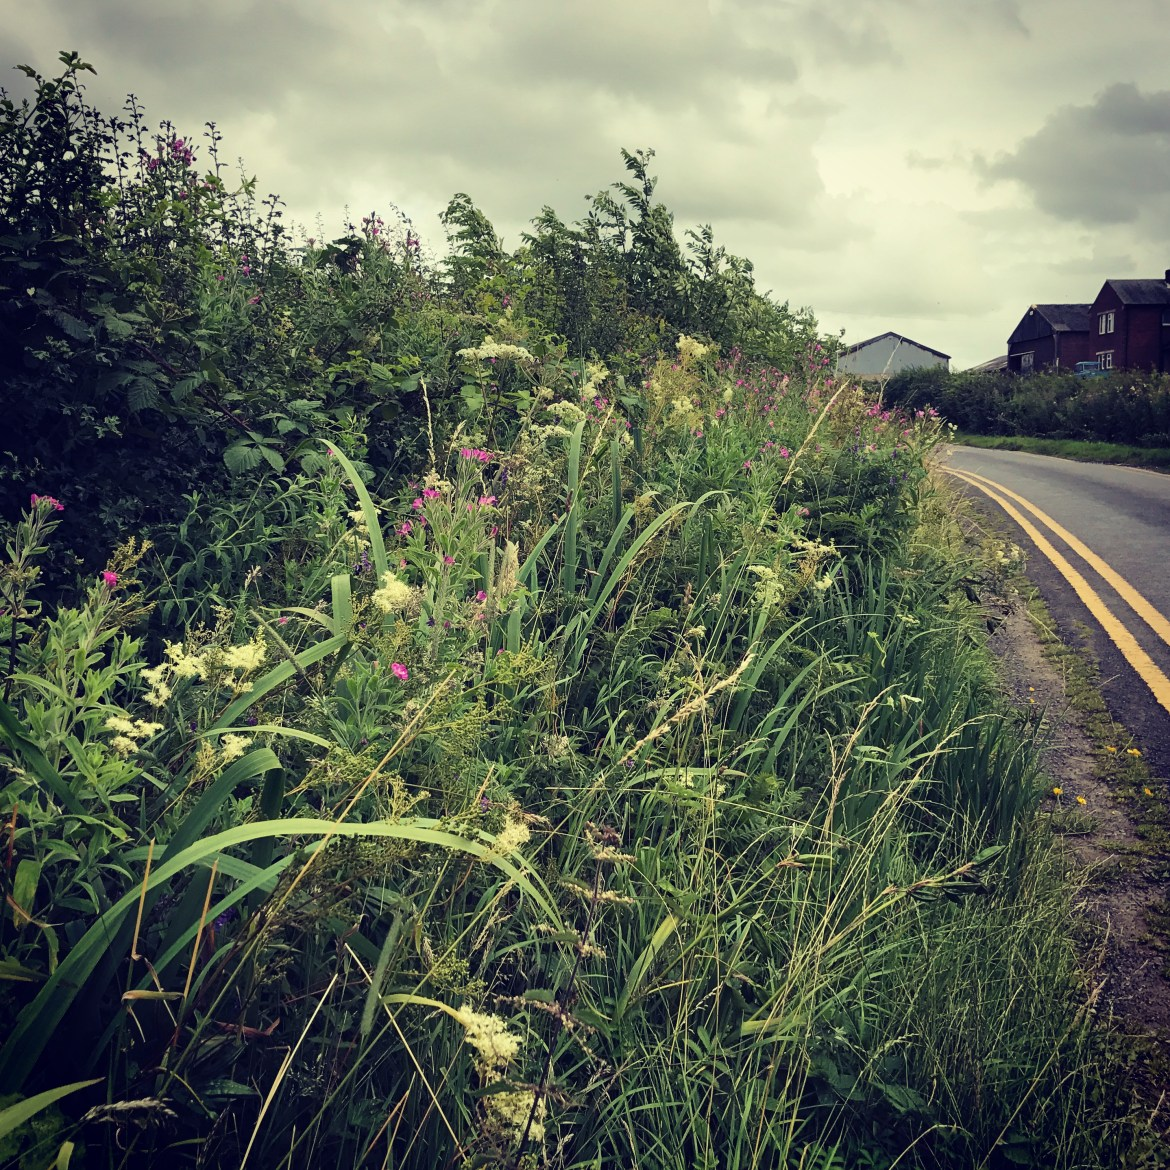 Wild flowers on road verges